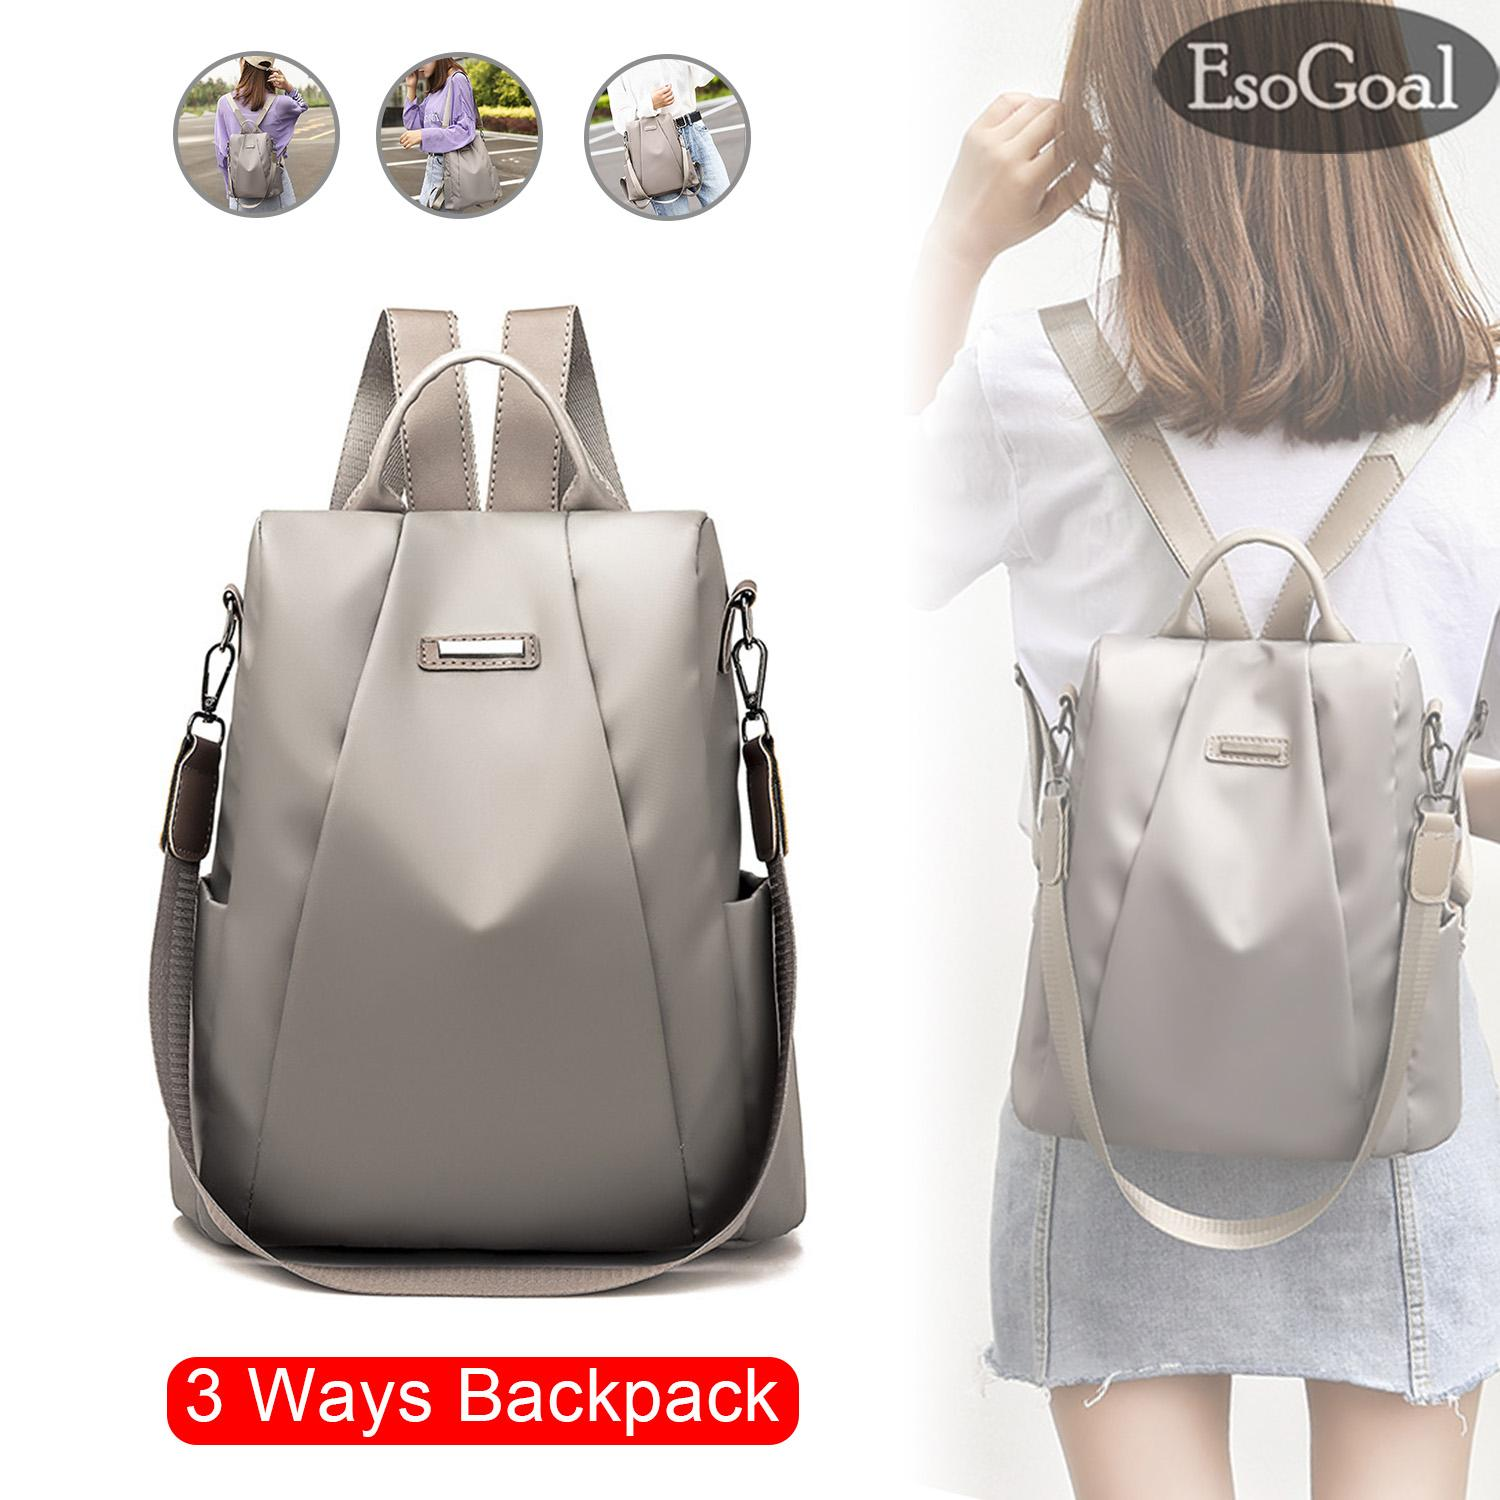 f72cd503f75 EsoGoal Fashion Women Backpack Shoulder Bag Korea Style Anti-theft Backpack  College School Bag For